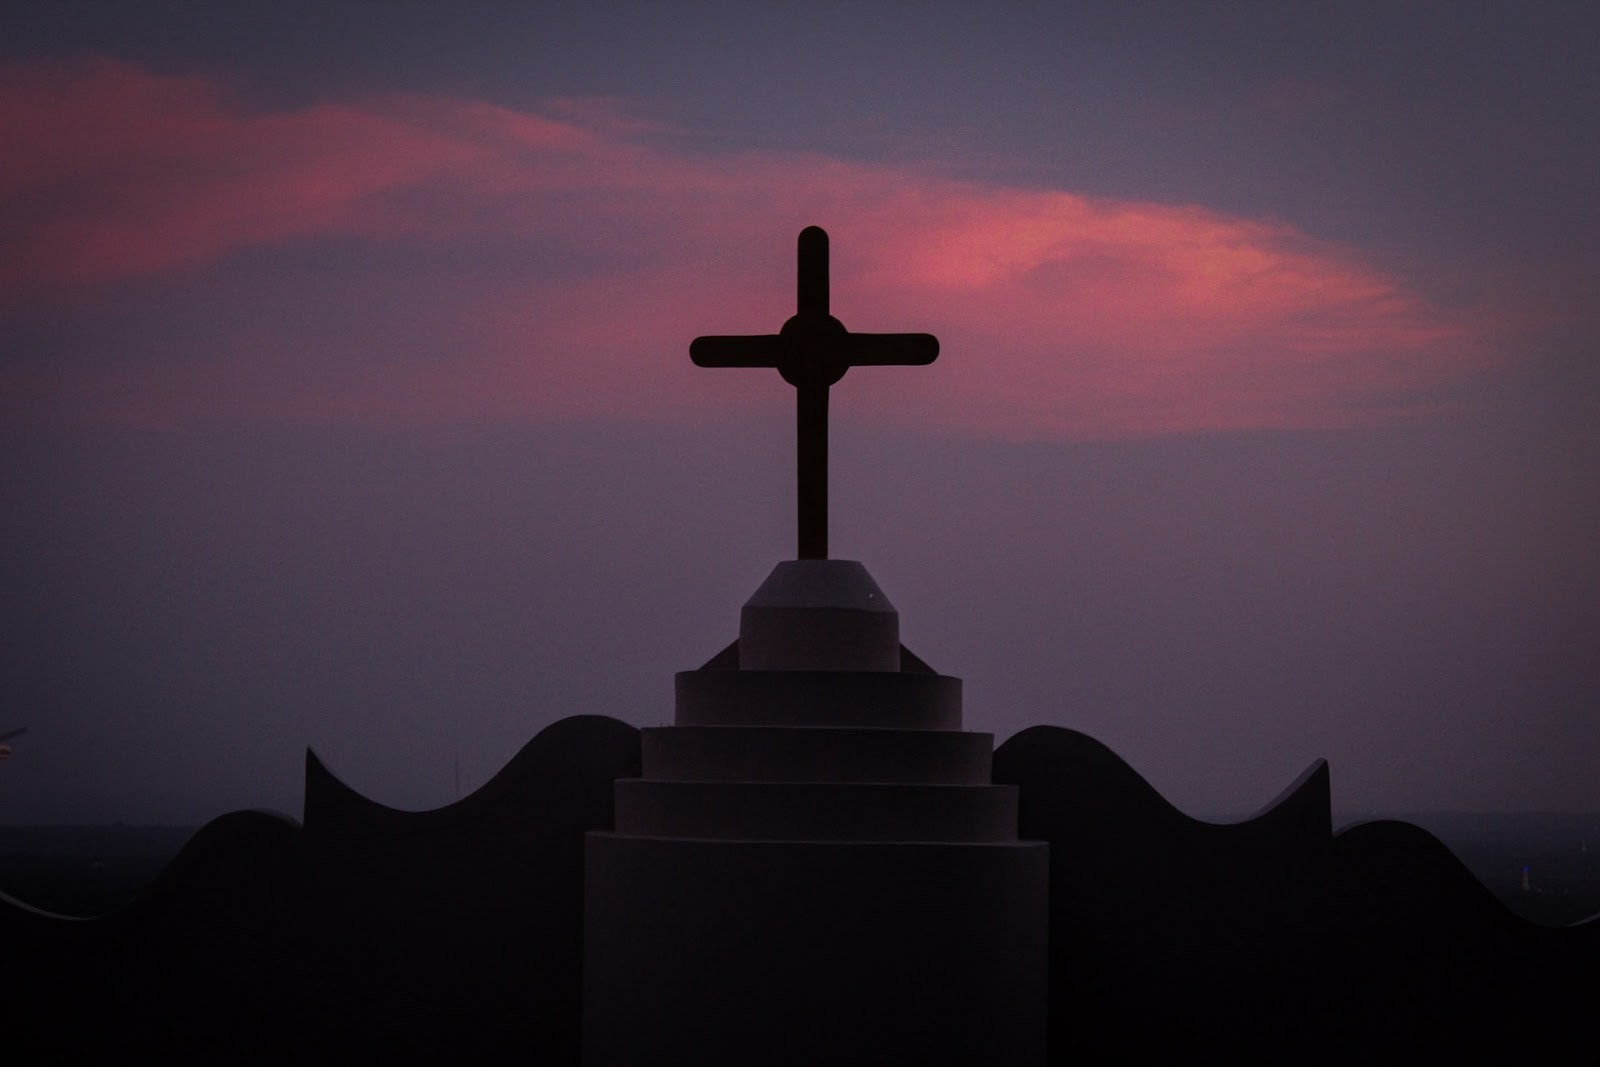 silhouette of cross on a roof at night